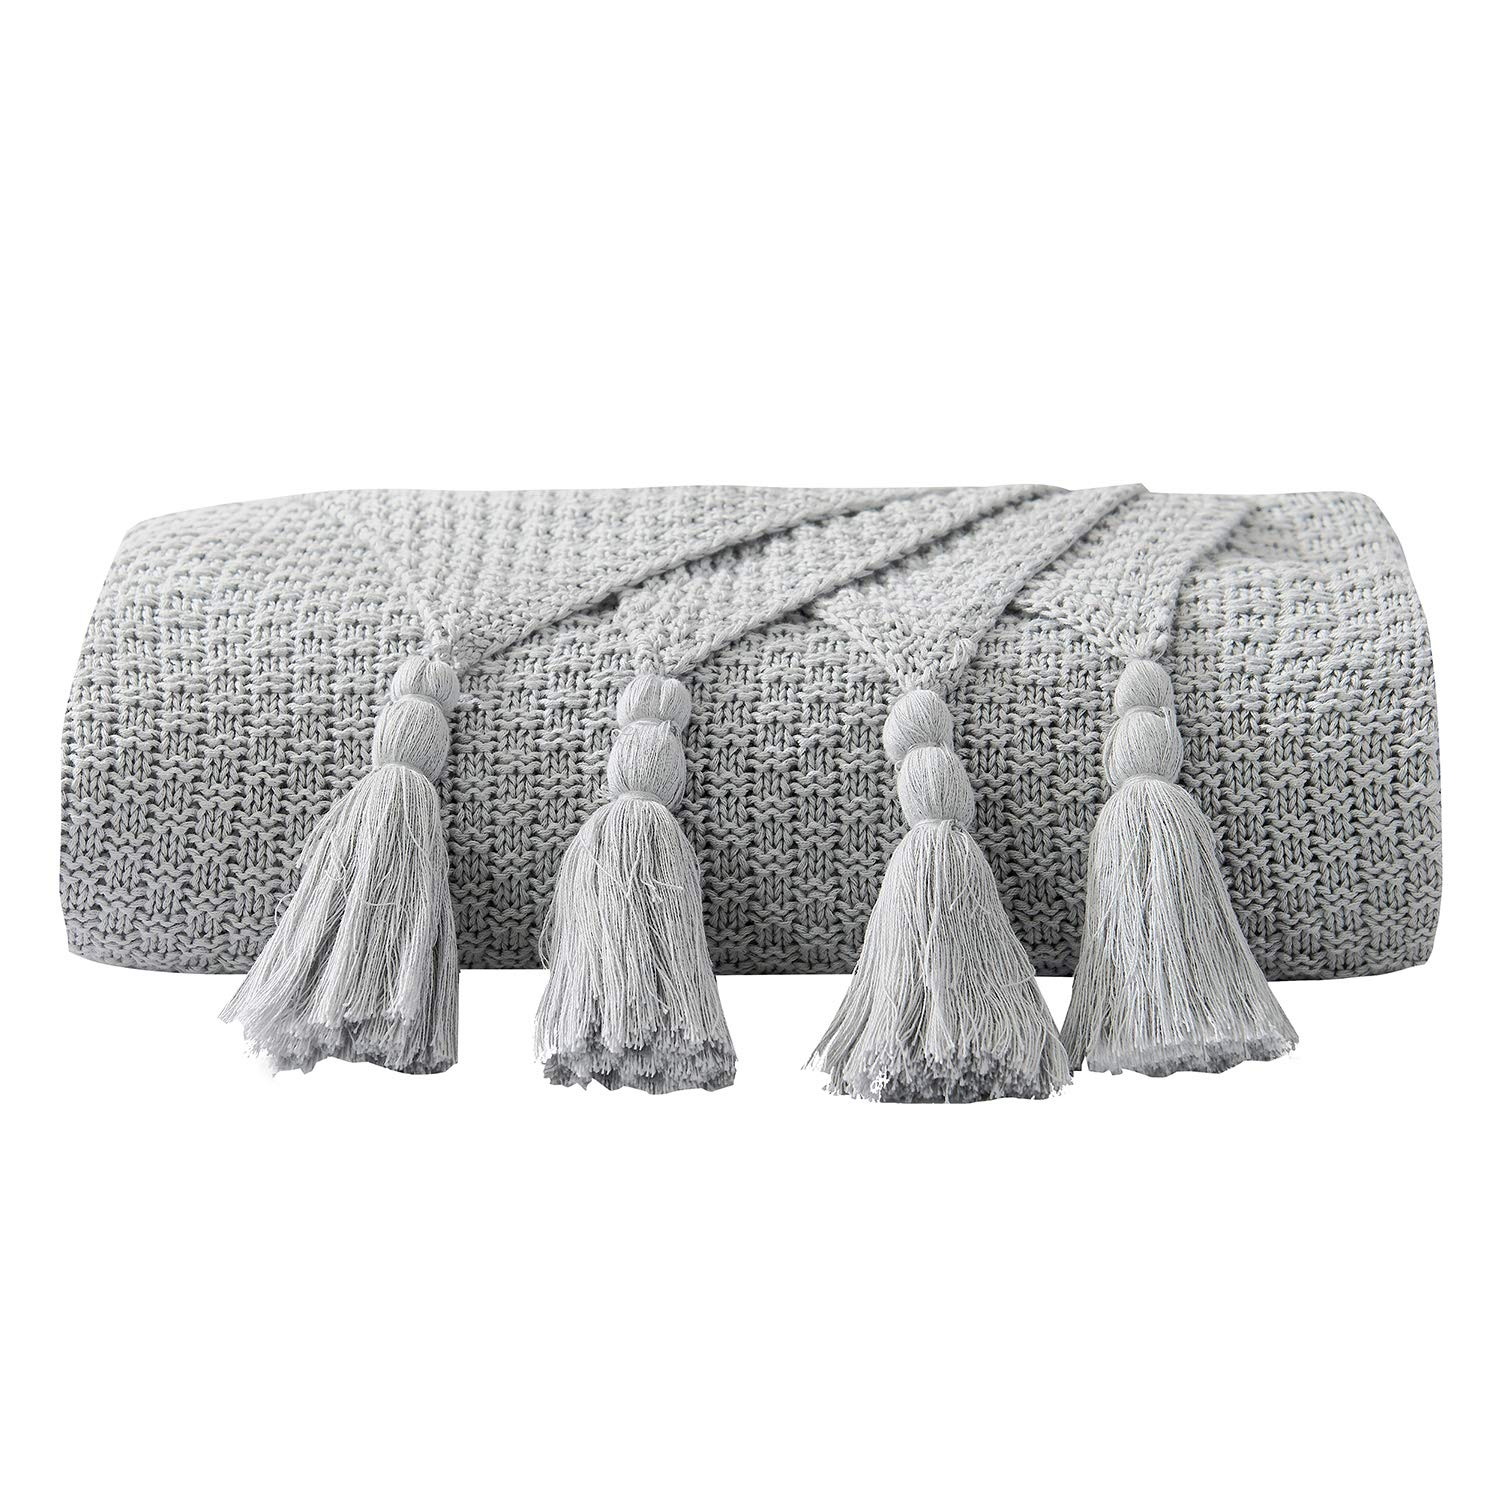 DOMIKING 100% Cotton Knitted Throws and Blankets for Sofa Couch Bed Multiple Used Special Tassels Blanket Lightweight Grey Throw Four-Season Use,51''x67'' ... by DOMIKING